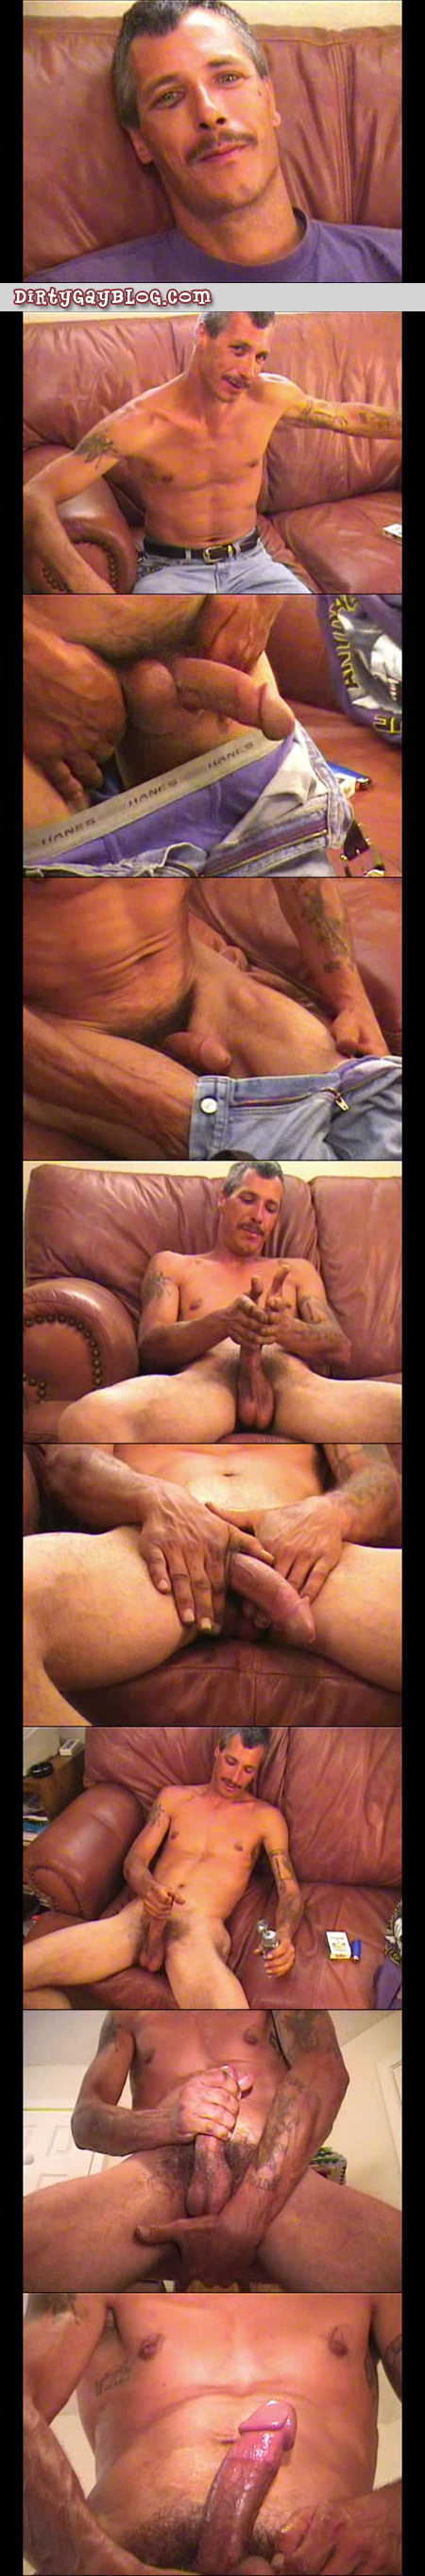 Arrogant straight man with a mustache jacking off on the couch.